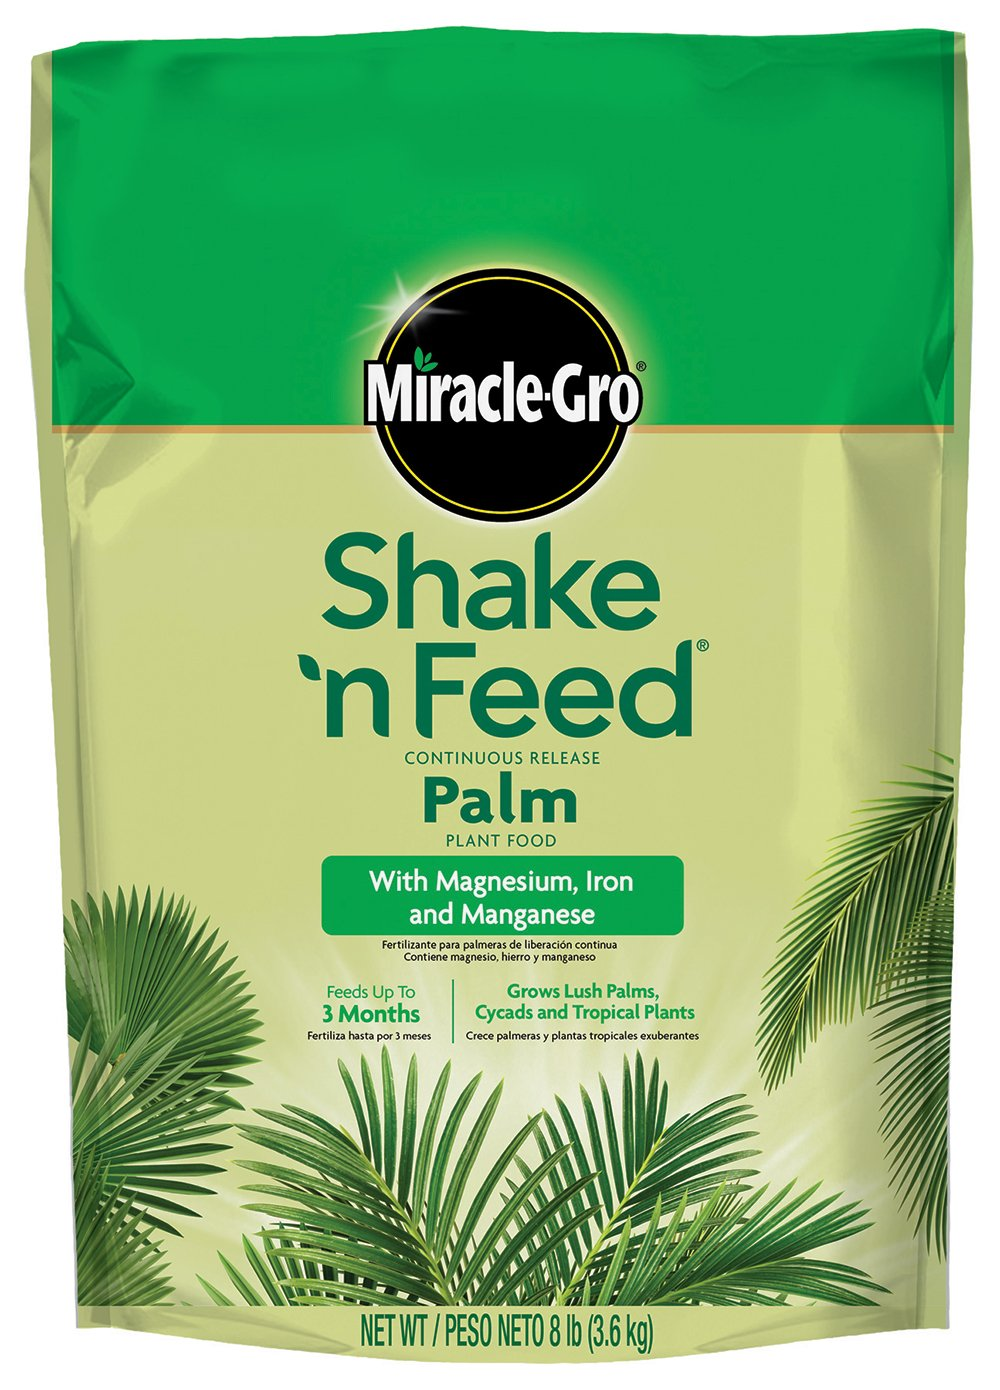 Amazon.com : Miracle-Gro 1007021 Shake n Feed Continuous Release Palm Plant Food (4 Pack), 8 lb : Garden & Outdoor